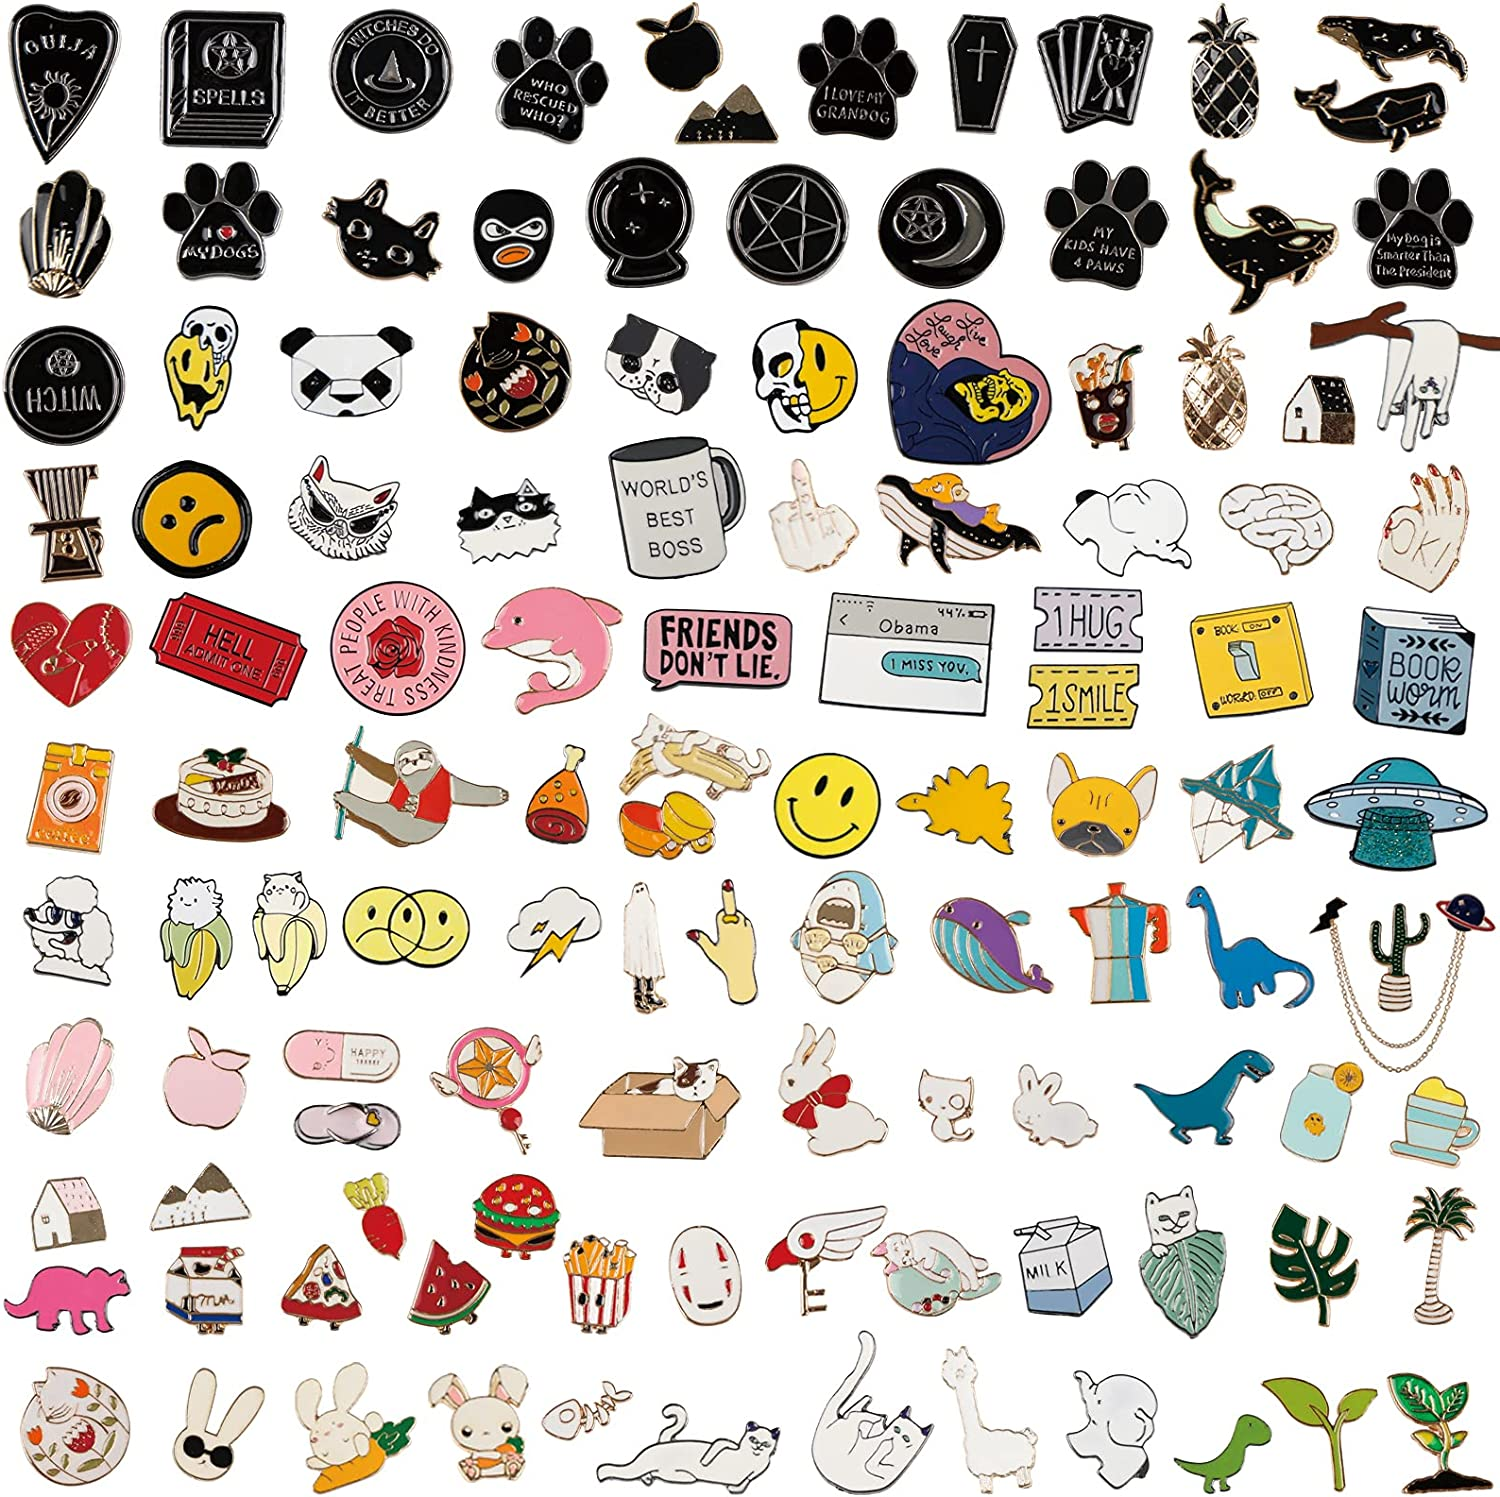 18 Mixed Style Enamel Brooch Pin Set to Give 2 Random Pattern Brooches Pins Jewelry Accessories Decoration Gift for Clothing Bags Jackets